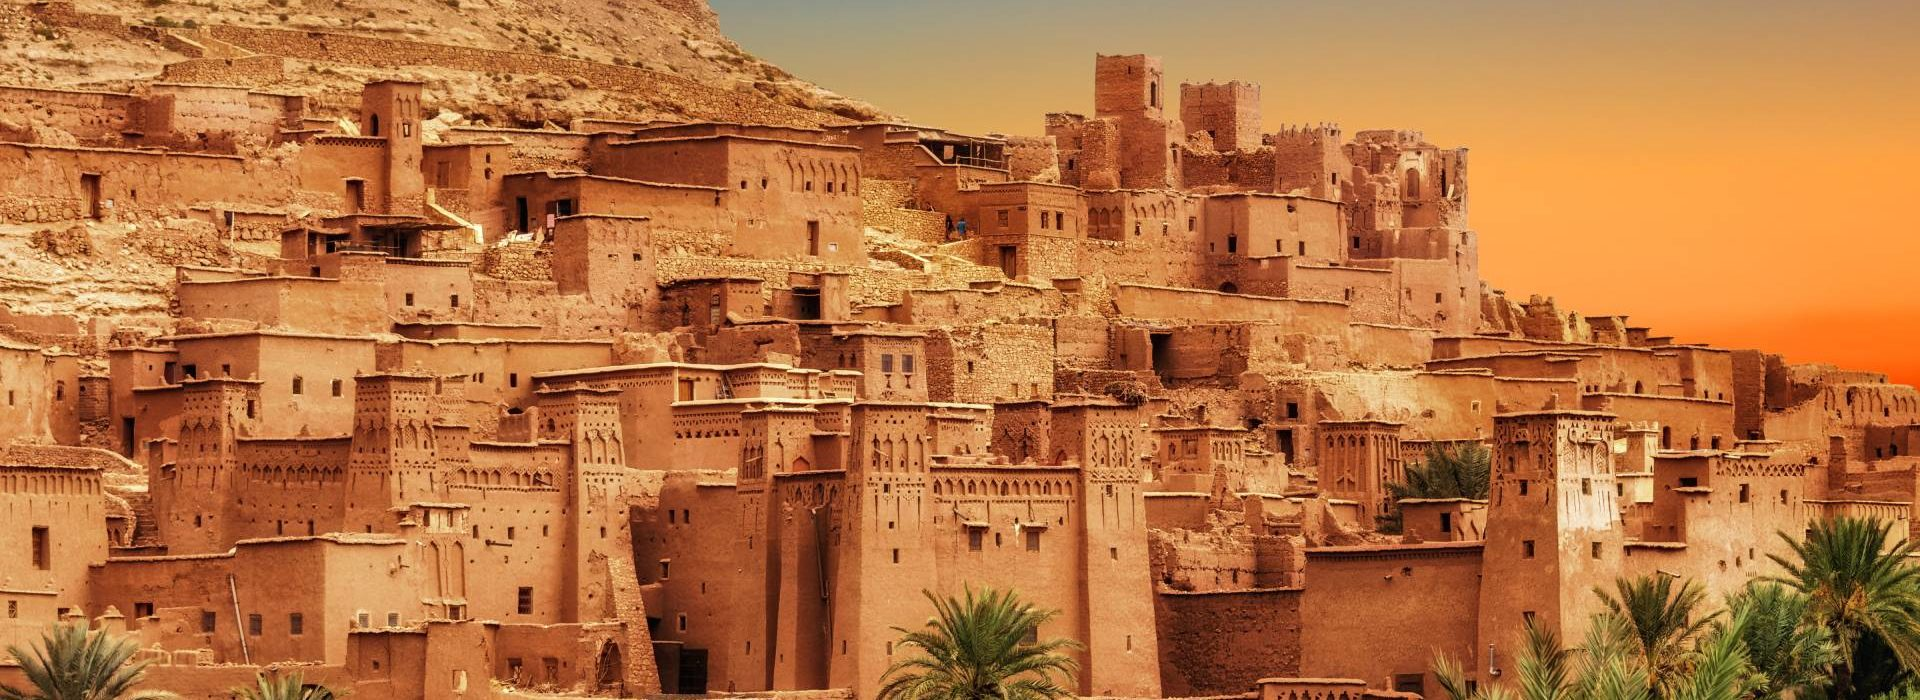 Kasbah Ait Ben Haddou in the Atlas mountains